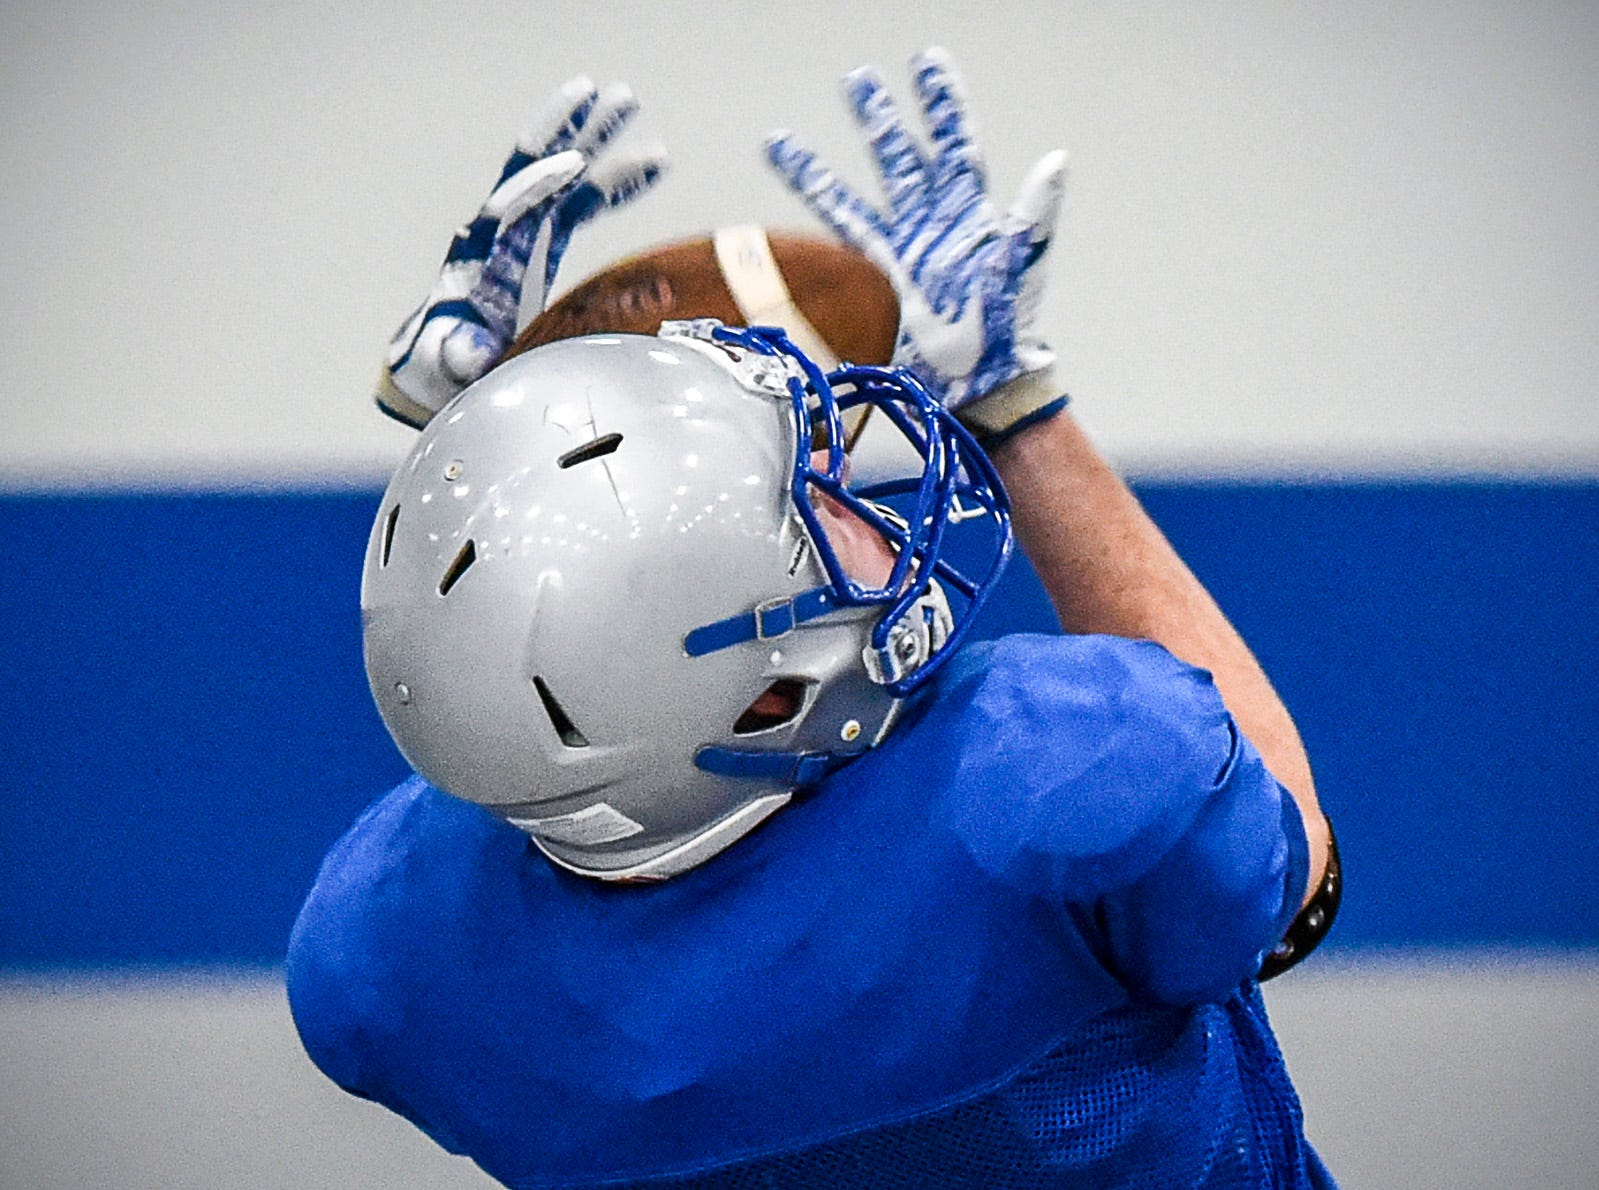 Foley wide receiver Mitch Peterson pulls in a pass during practice Monday, Aug. 20, at the Foley High School.